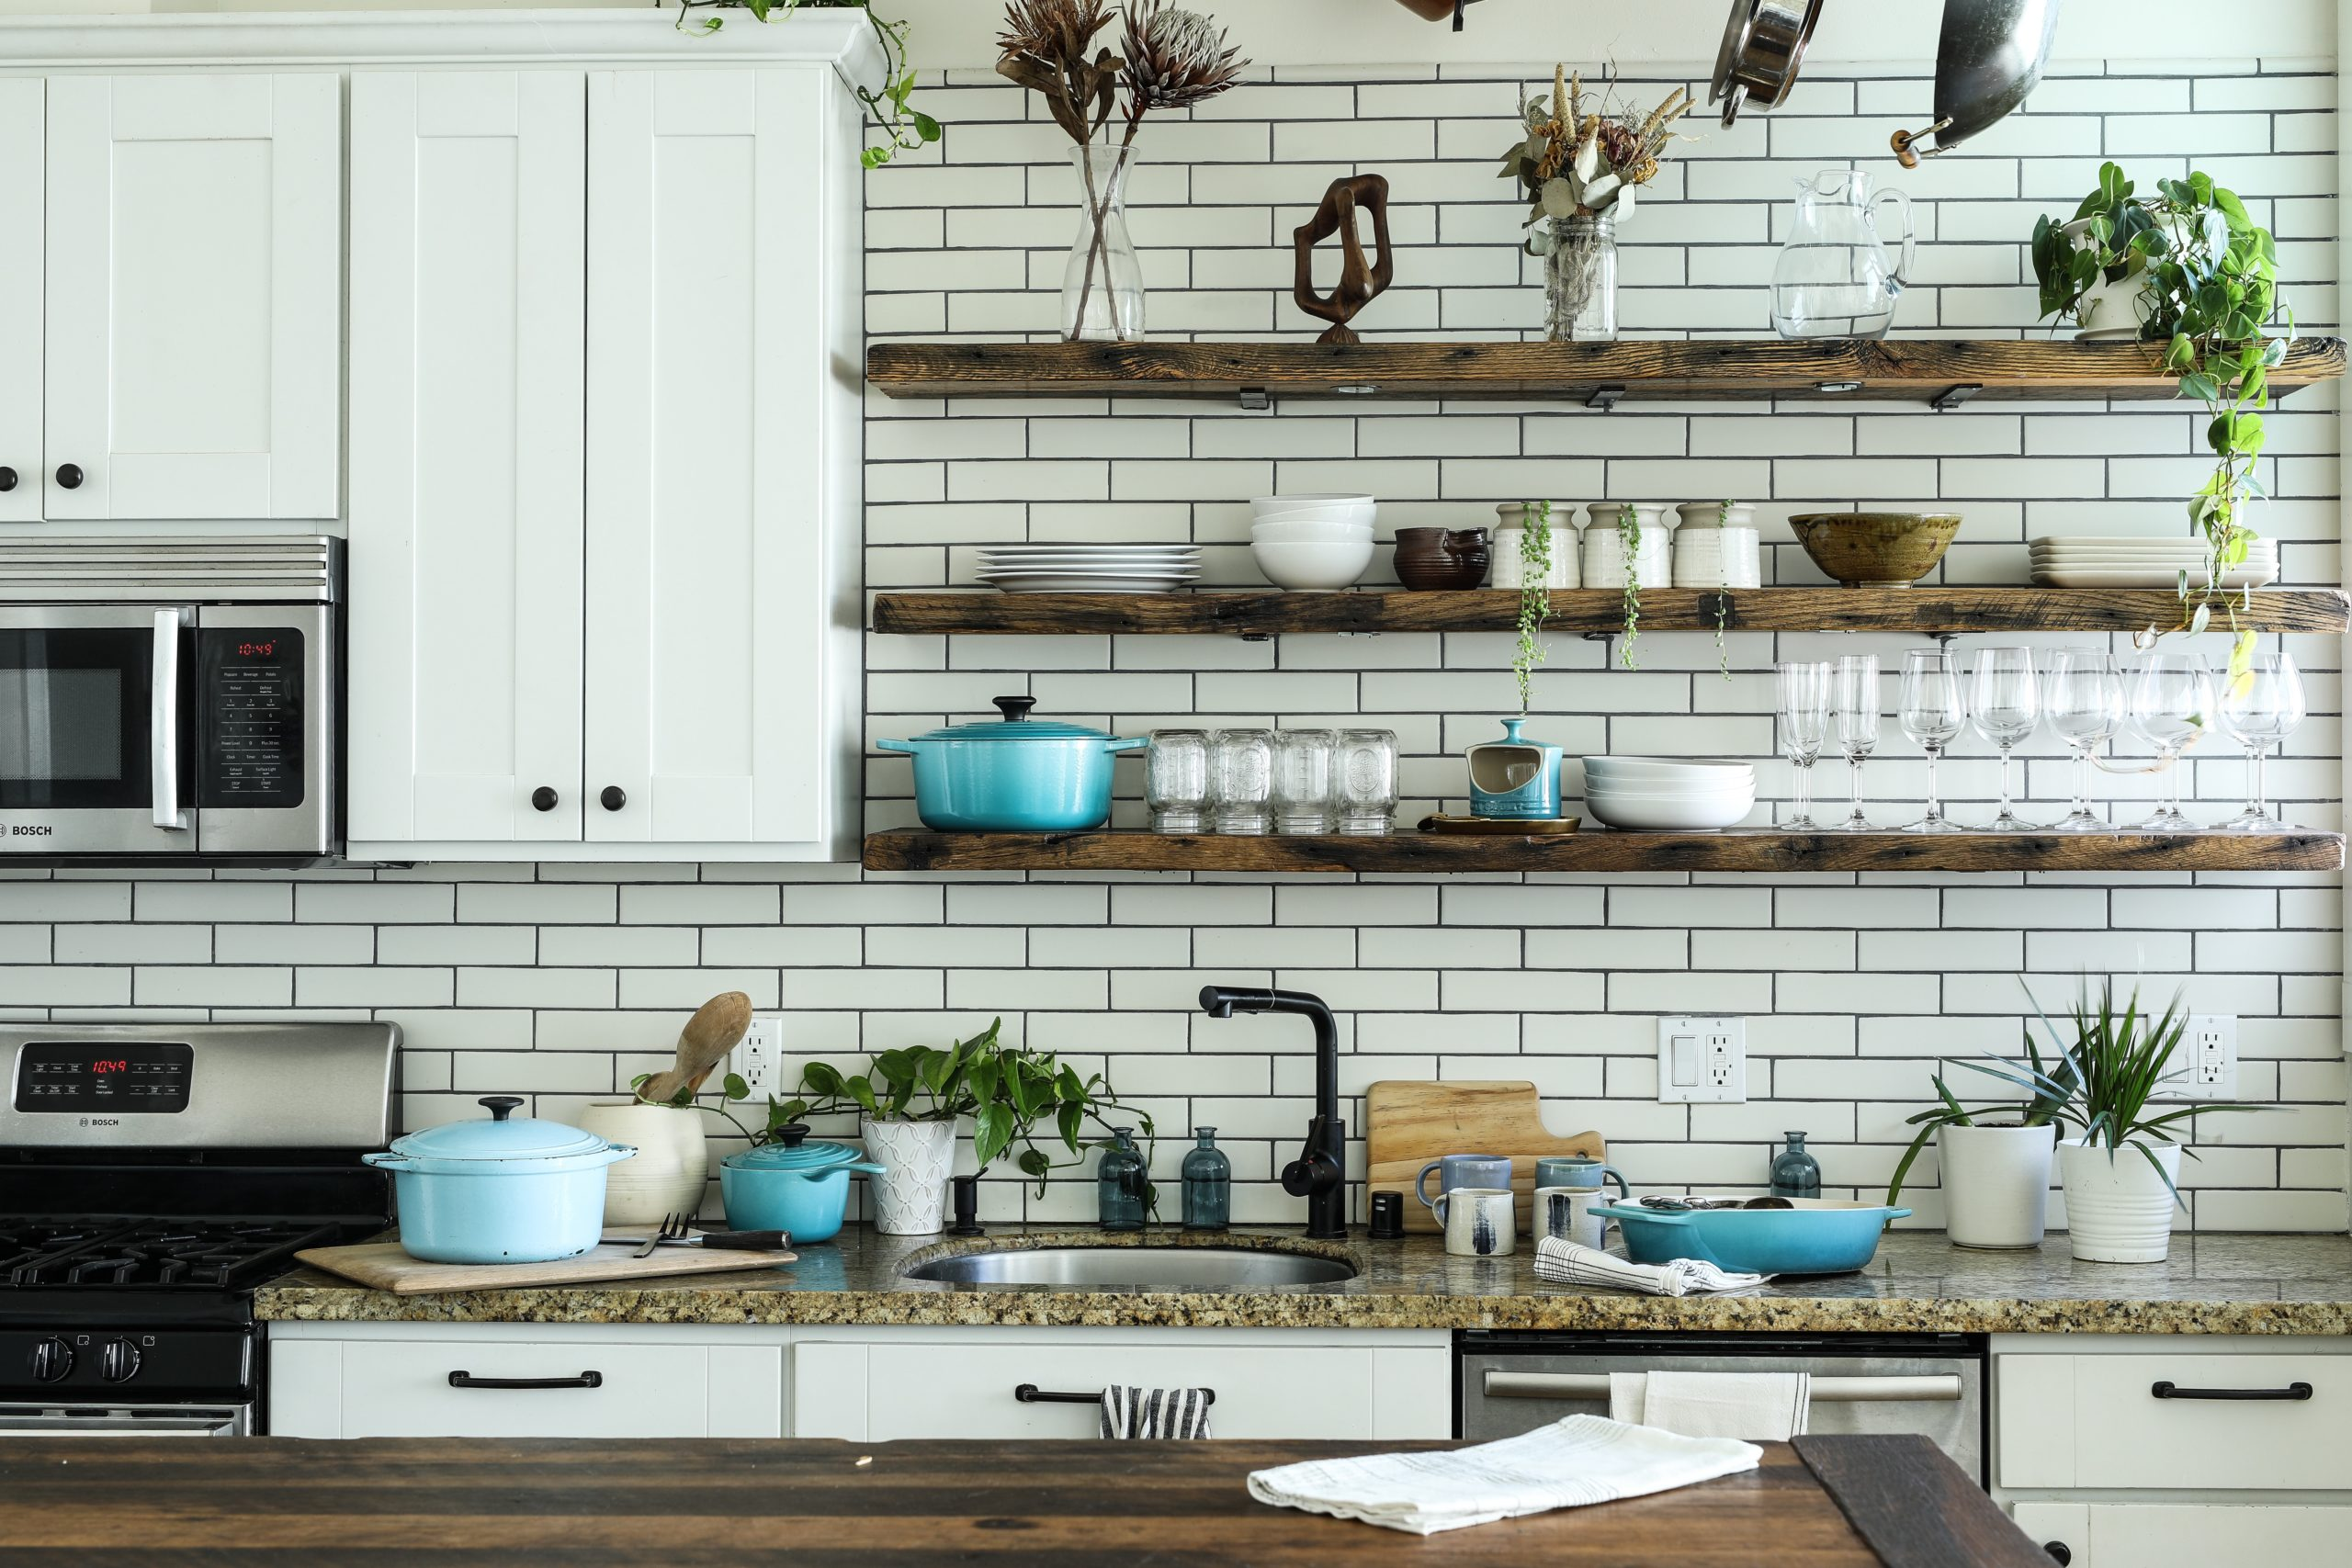 Kitchen Storage: Clever Tips and Tricks for Small Kitchens